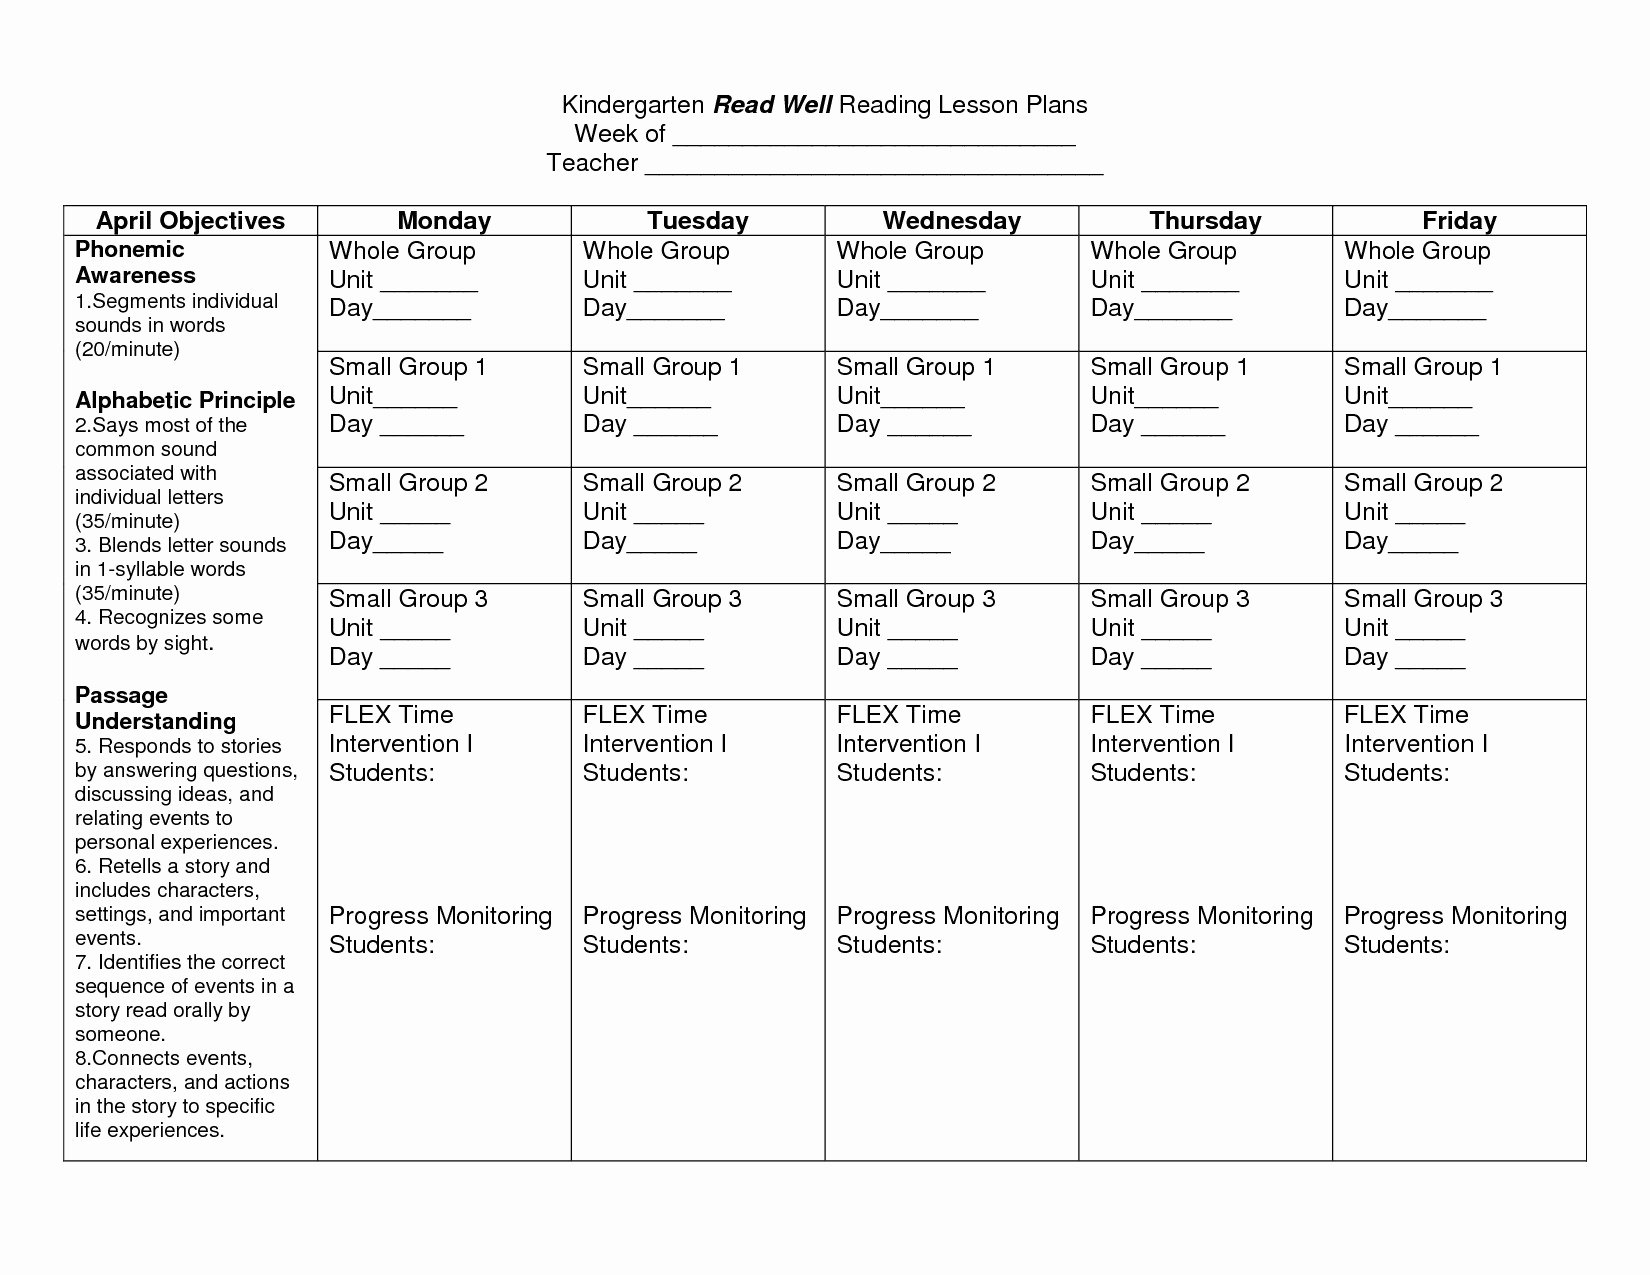 Best Lesson Plan Template Unique Guided Reading Lesson Plan Template Kindergarten – Best